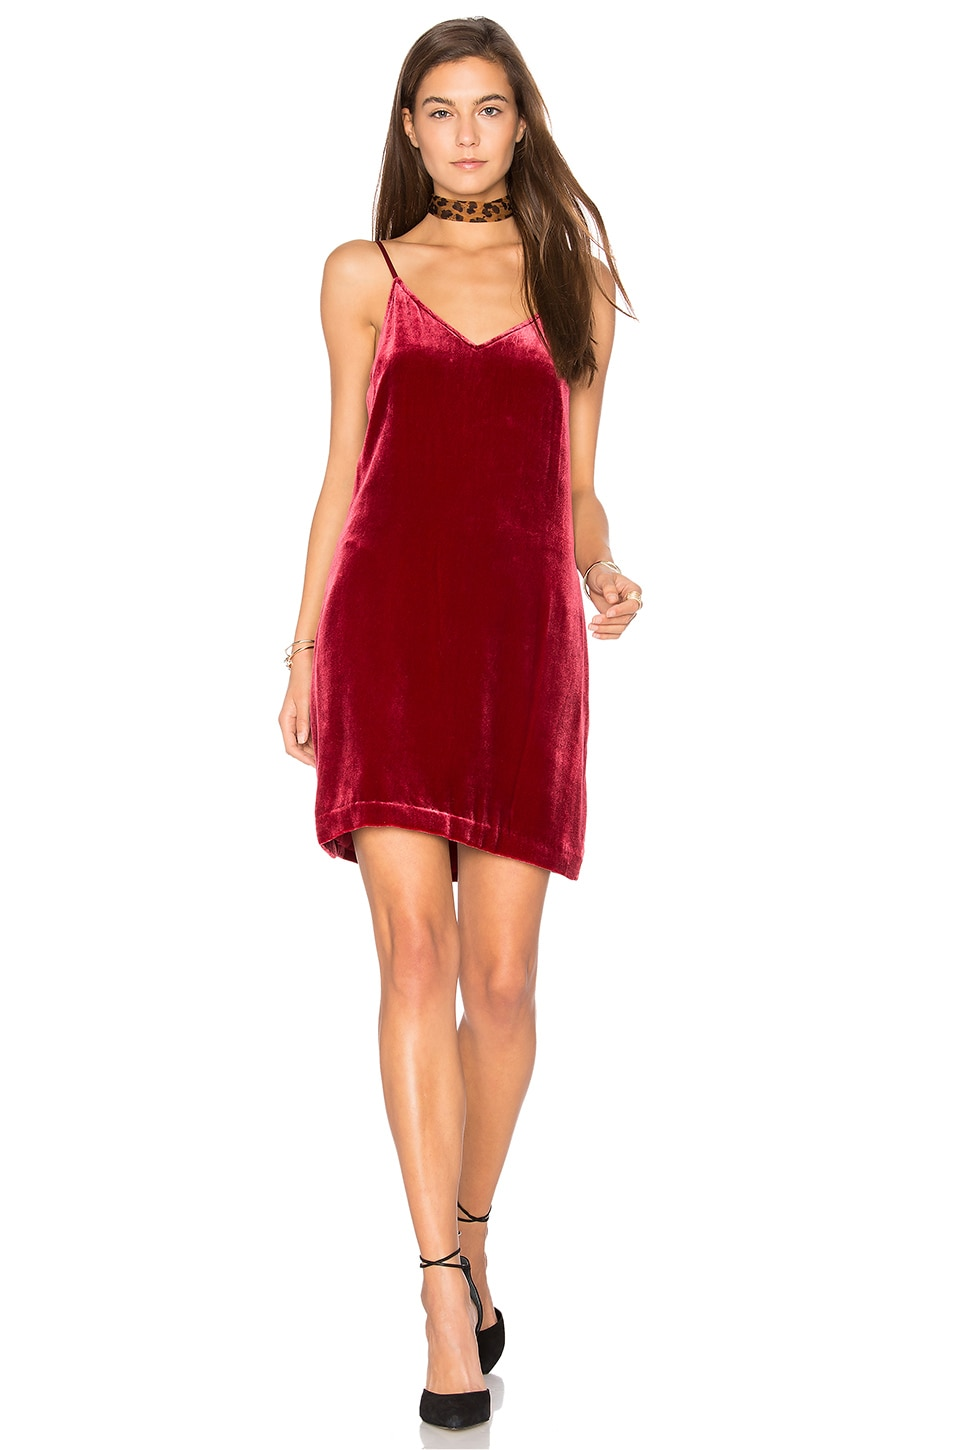 Sidney Frosted Velvet Cami Dress by Elizabeth And James